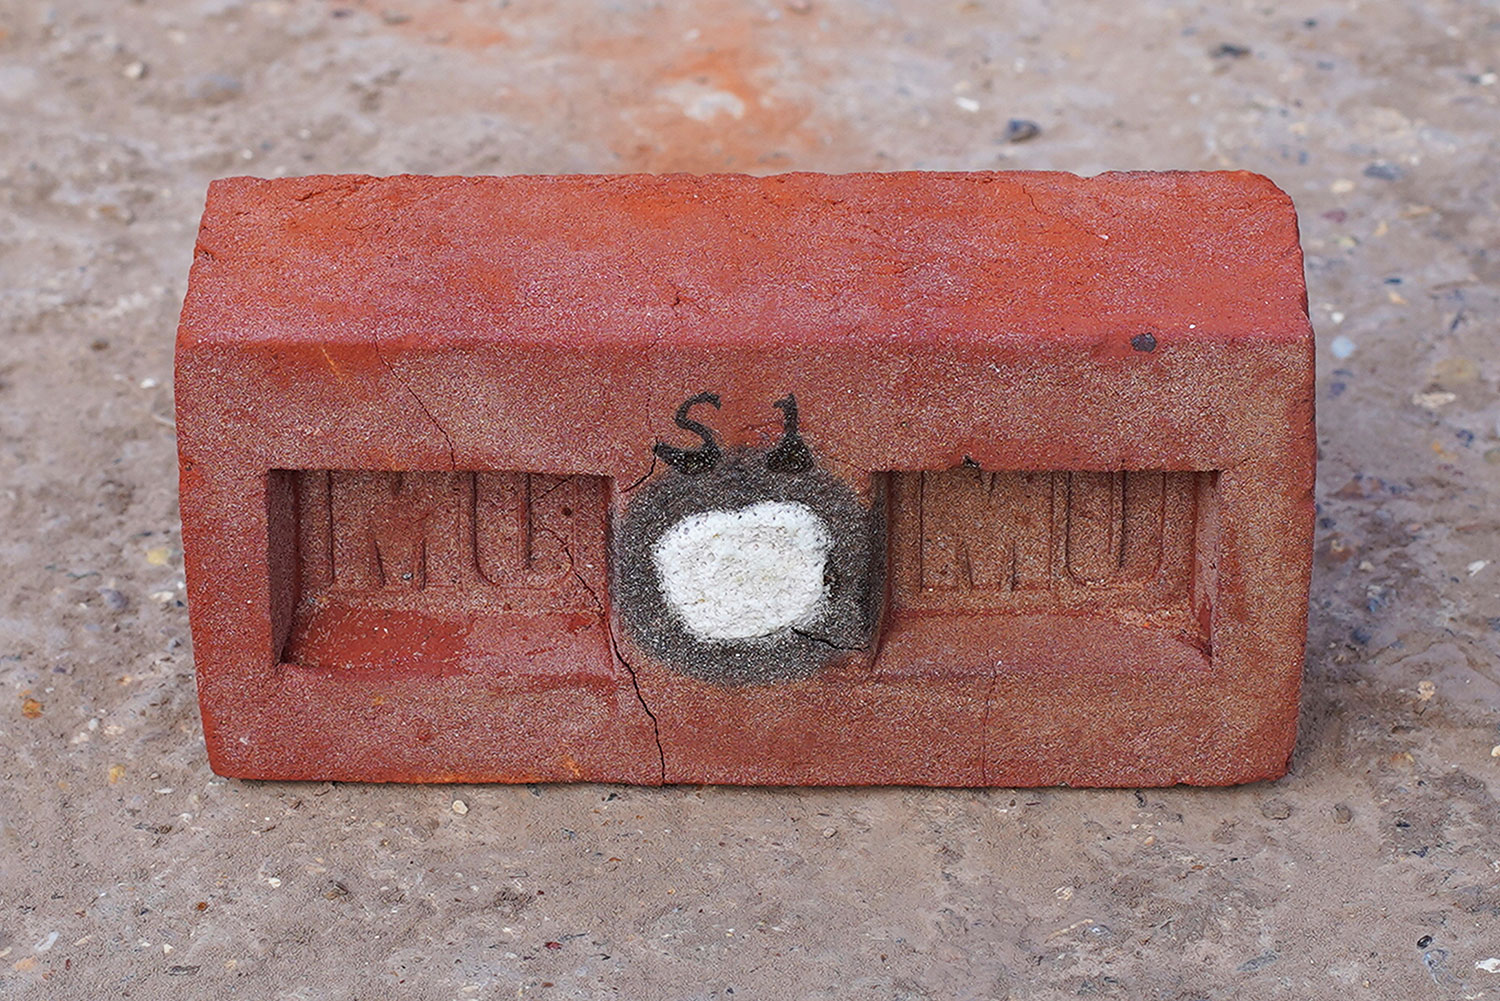 Fired Brick of Mu